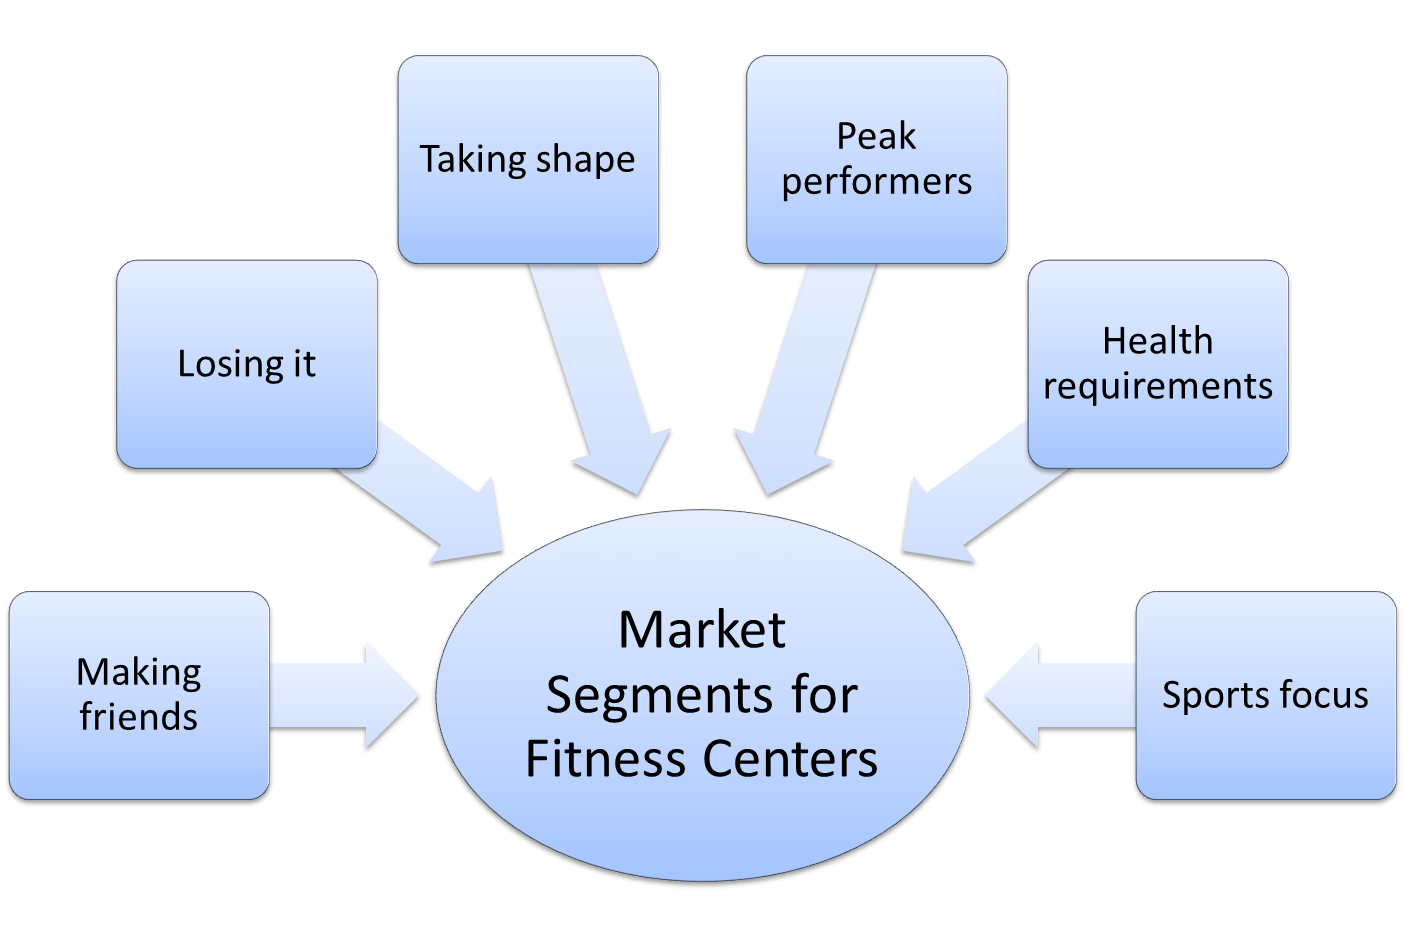 hight resolution of market segmentation example for fitness centers